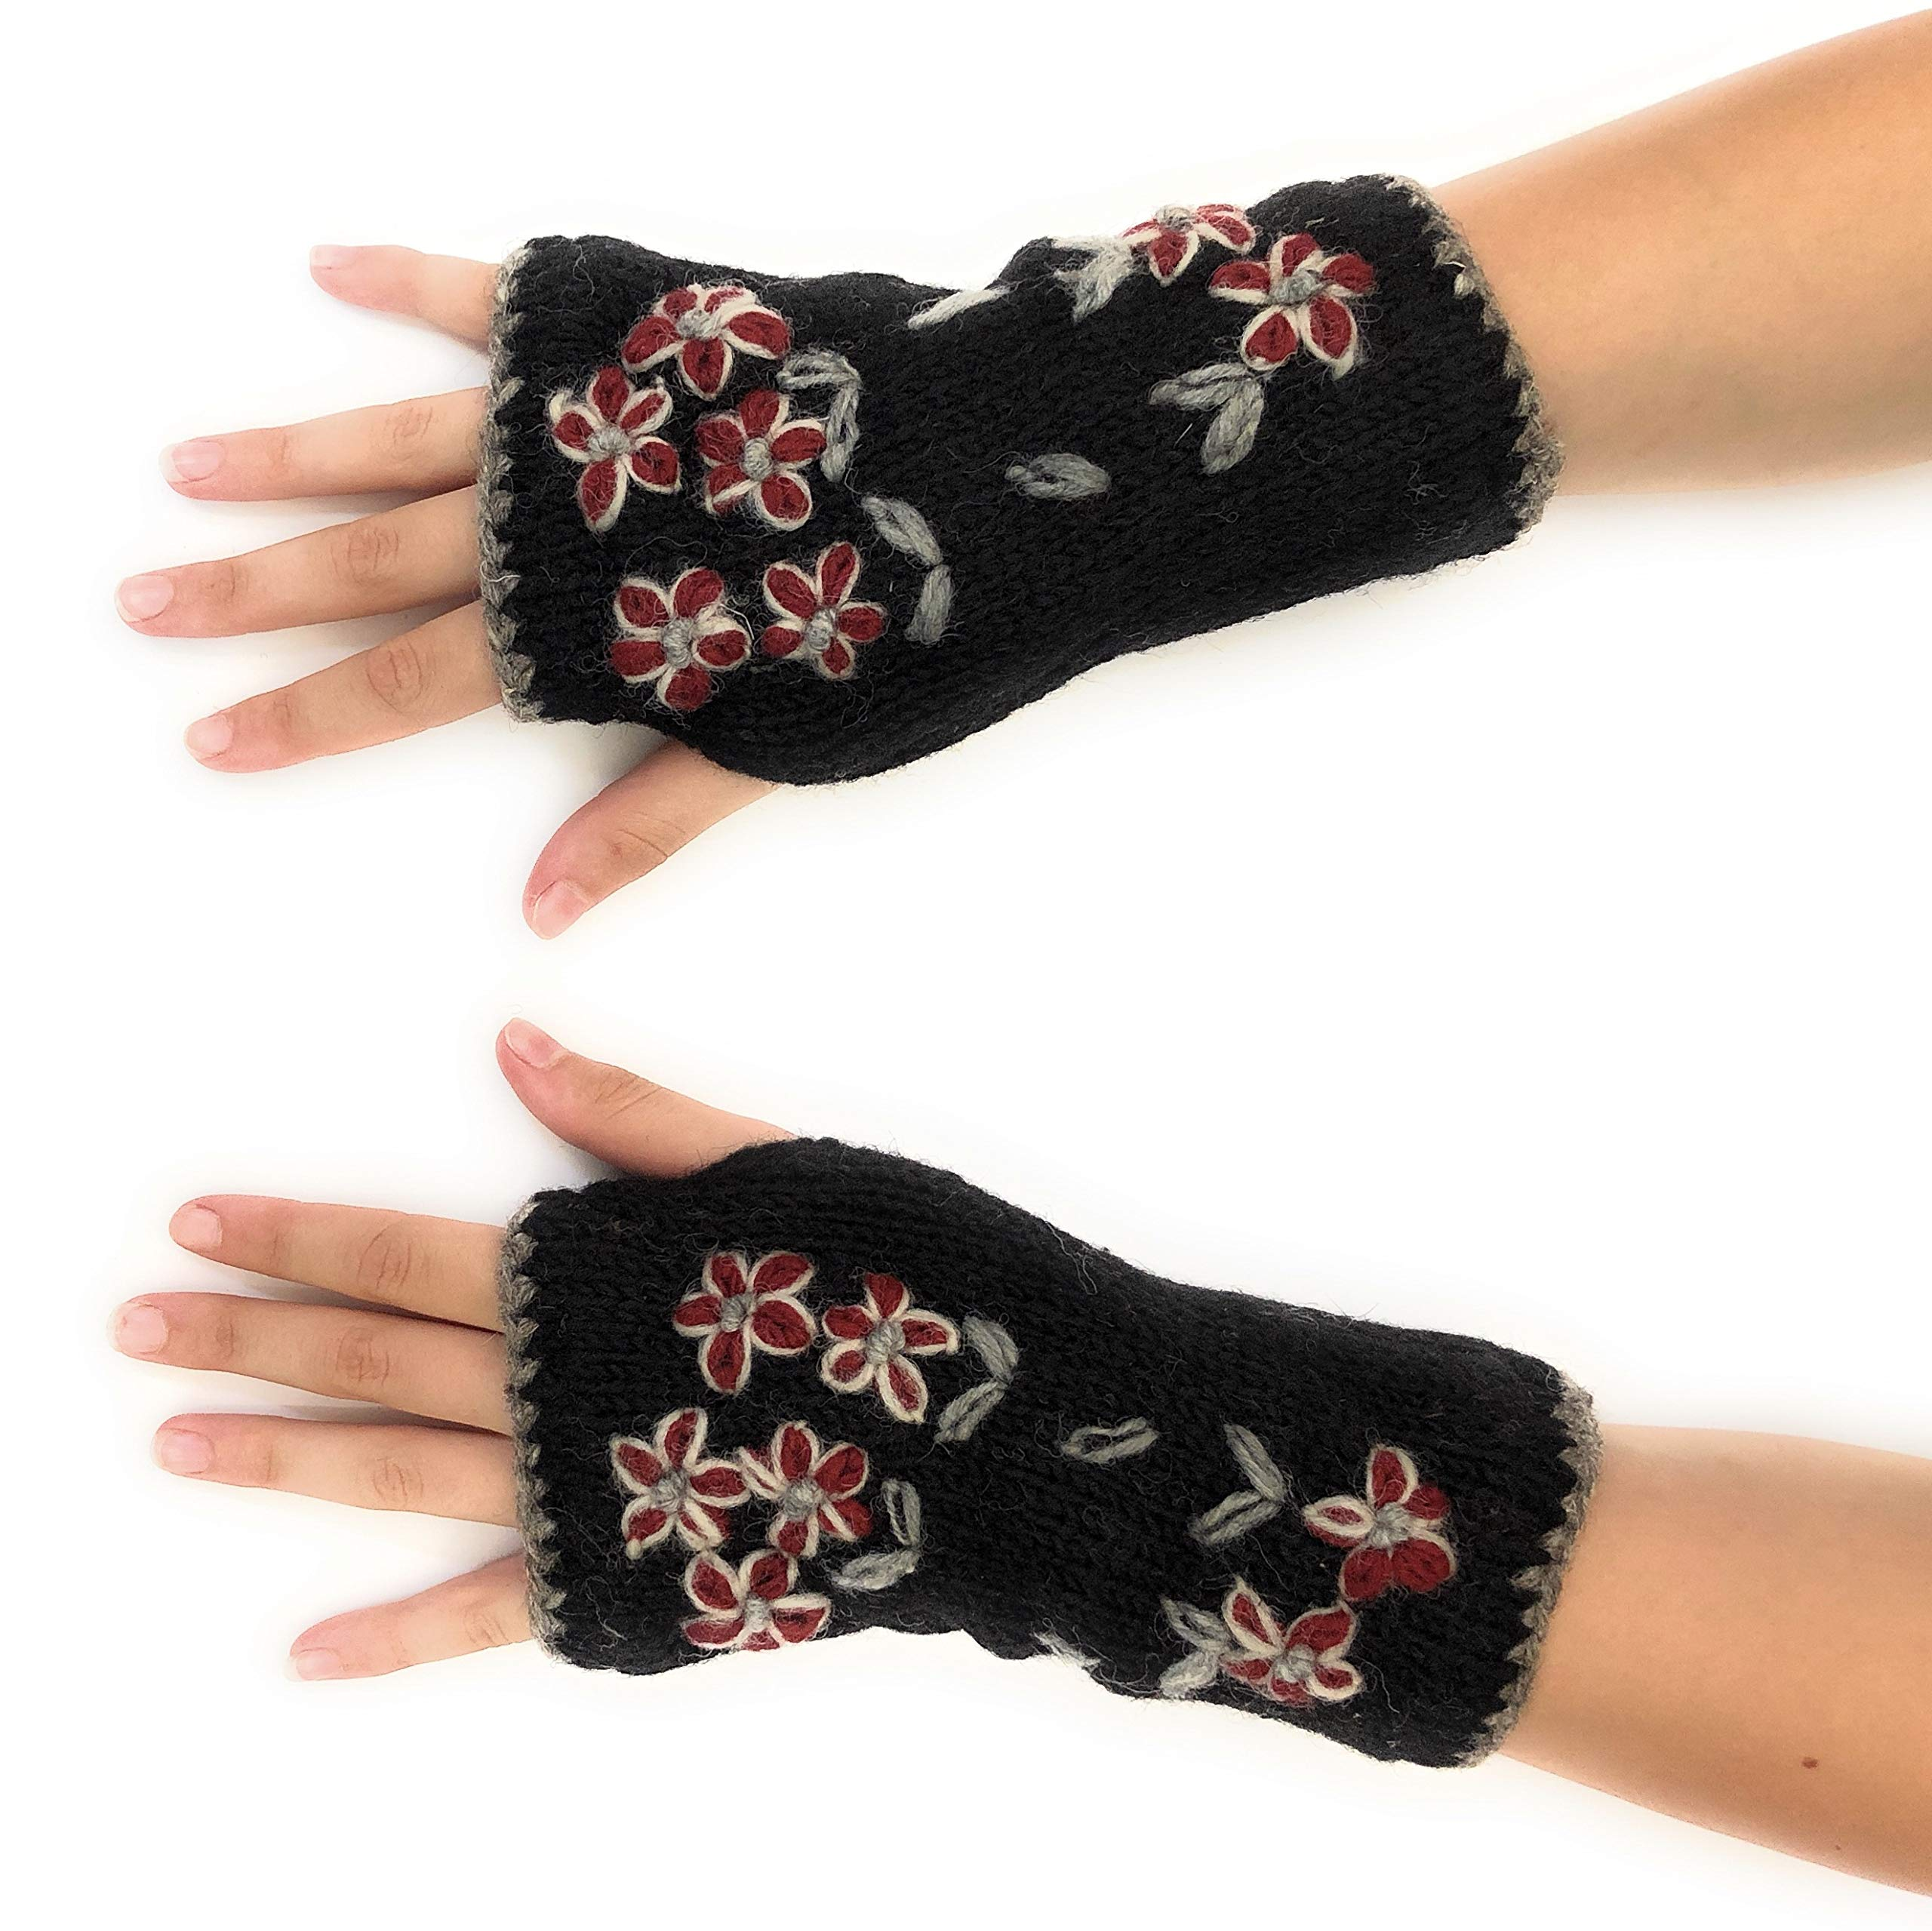 Hand Knit Fingerless Embroidered Flower Winter Wool Texting Gloves Mittens Warm Fleece Lined (Black)